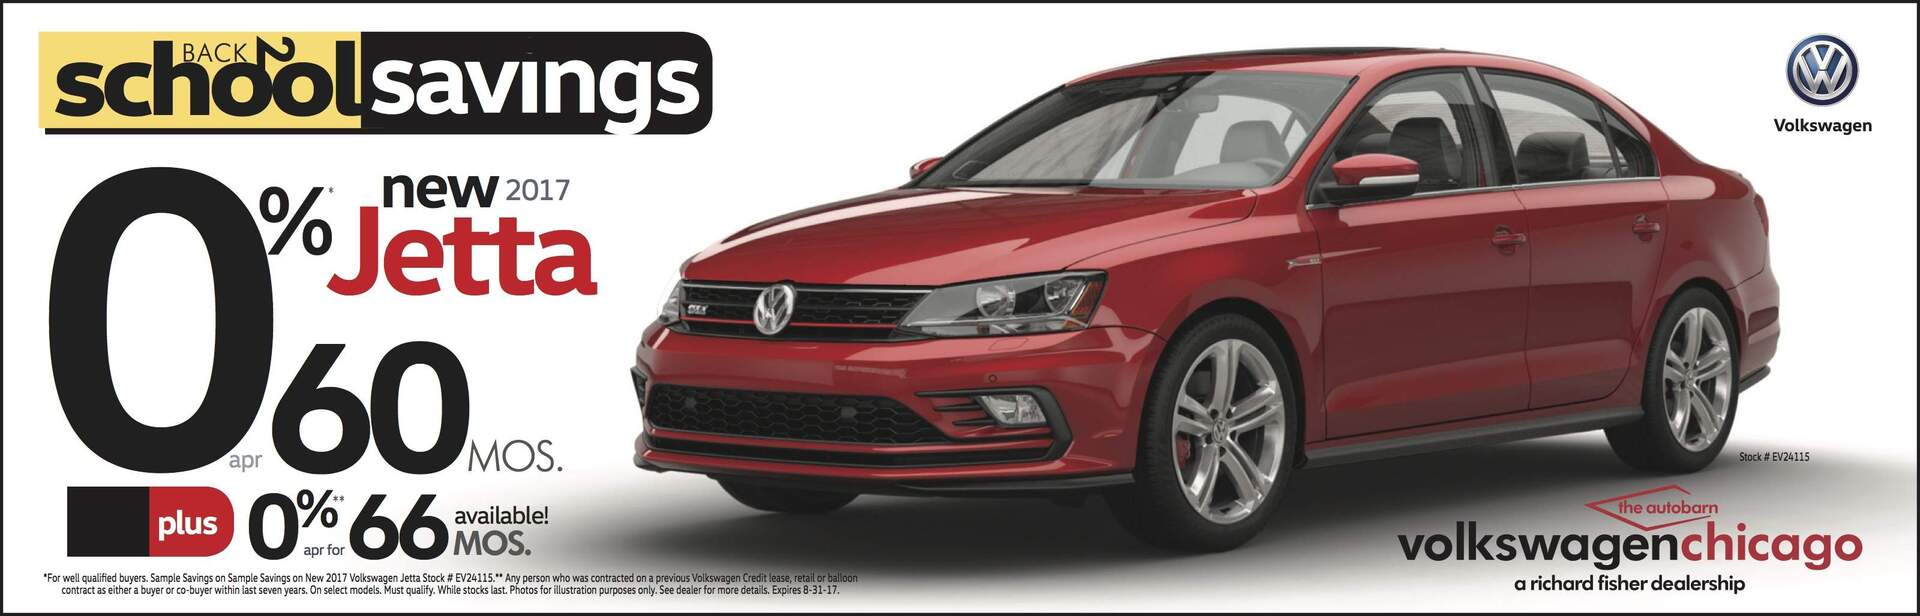 Autobarn City VW Jetta 0% APR for 60 months August